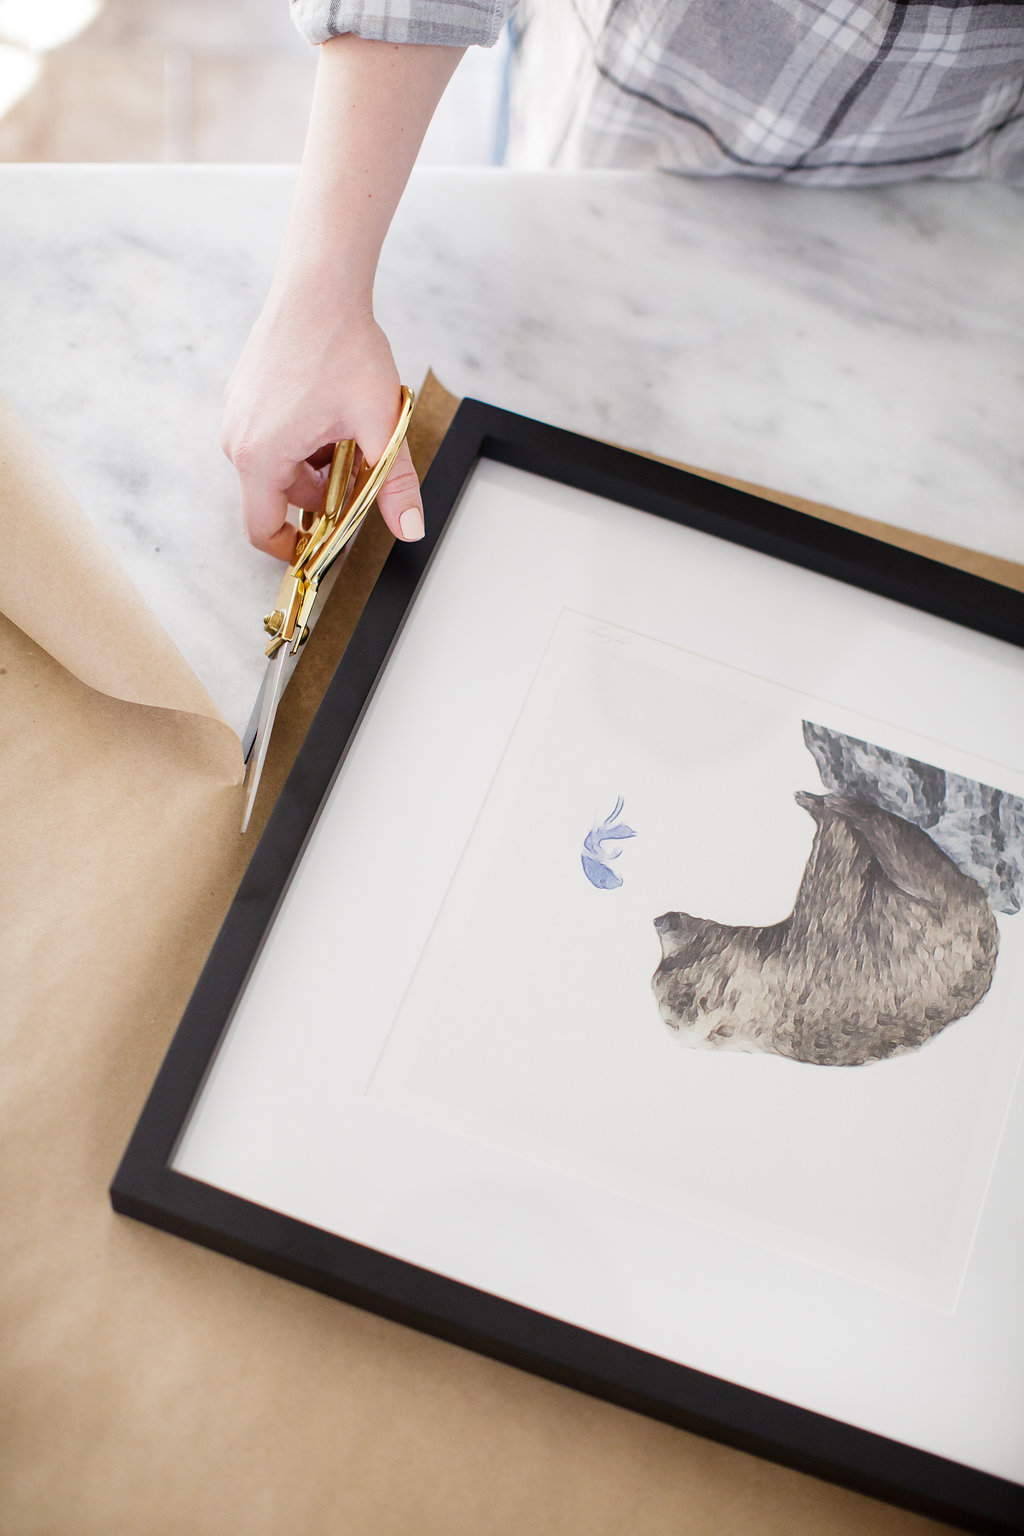 how-to-build-a-gallery-wall-minted-gallery-wall-nursery-gender-neutral-baby-boy-artwork-rosecitystyleguide - Copy